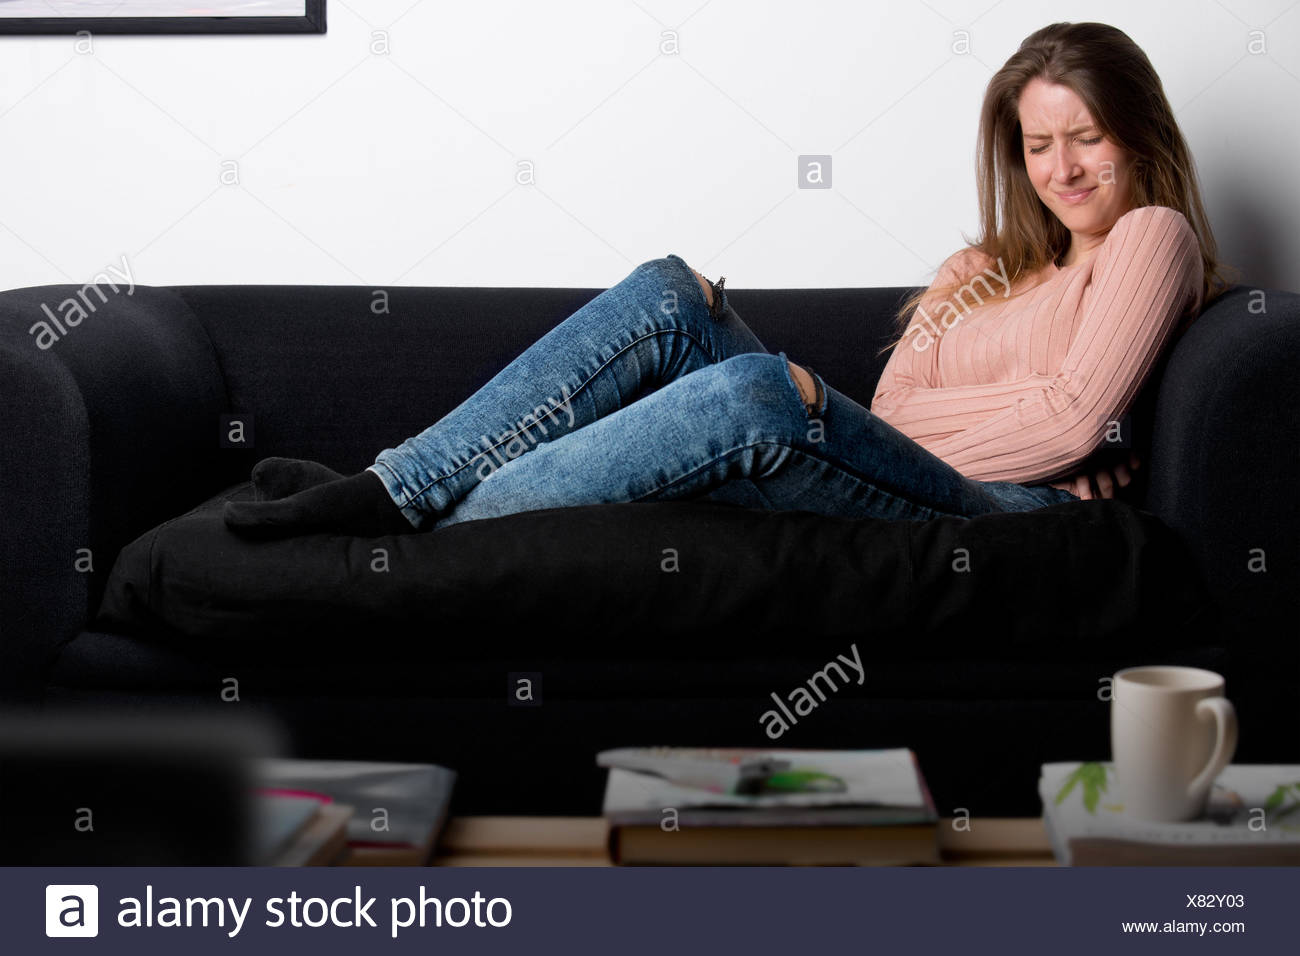 Woman in Pain on a Couch - Stock Image